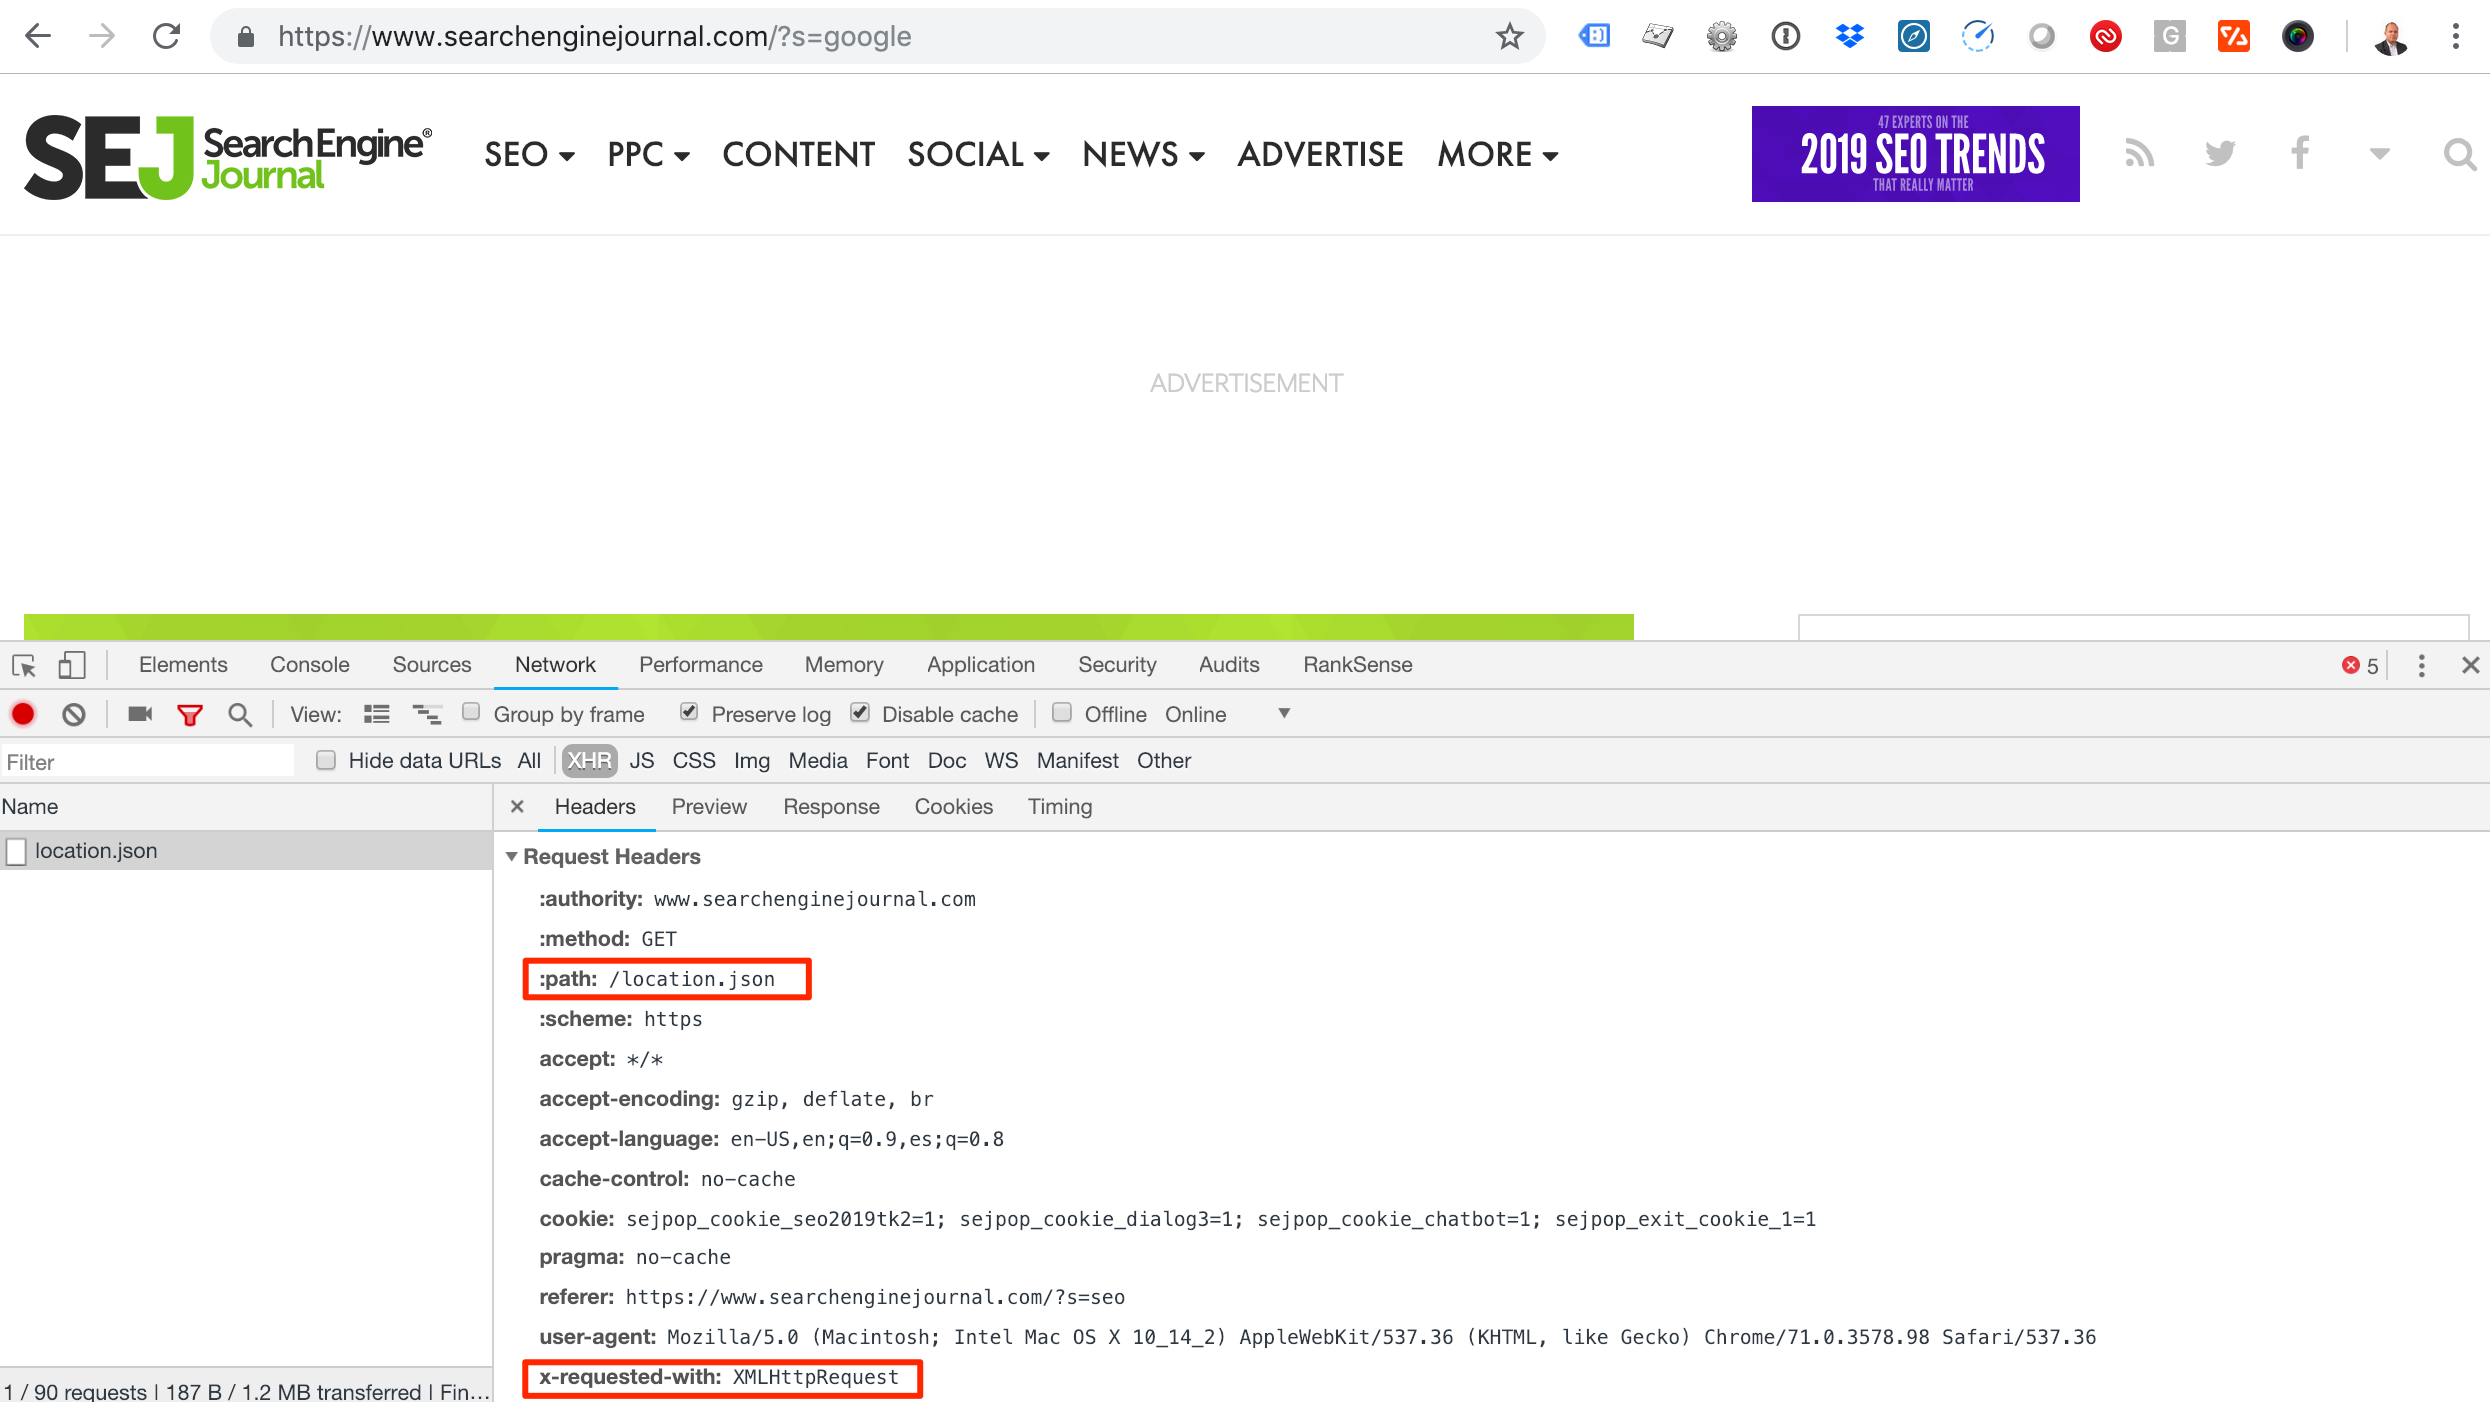 Screenshot showing how to check the request headers of a JSON file using Chrome Developer tools. The path of the json file is highlighted, as is the x-requested-with header.